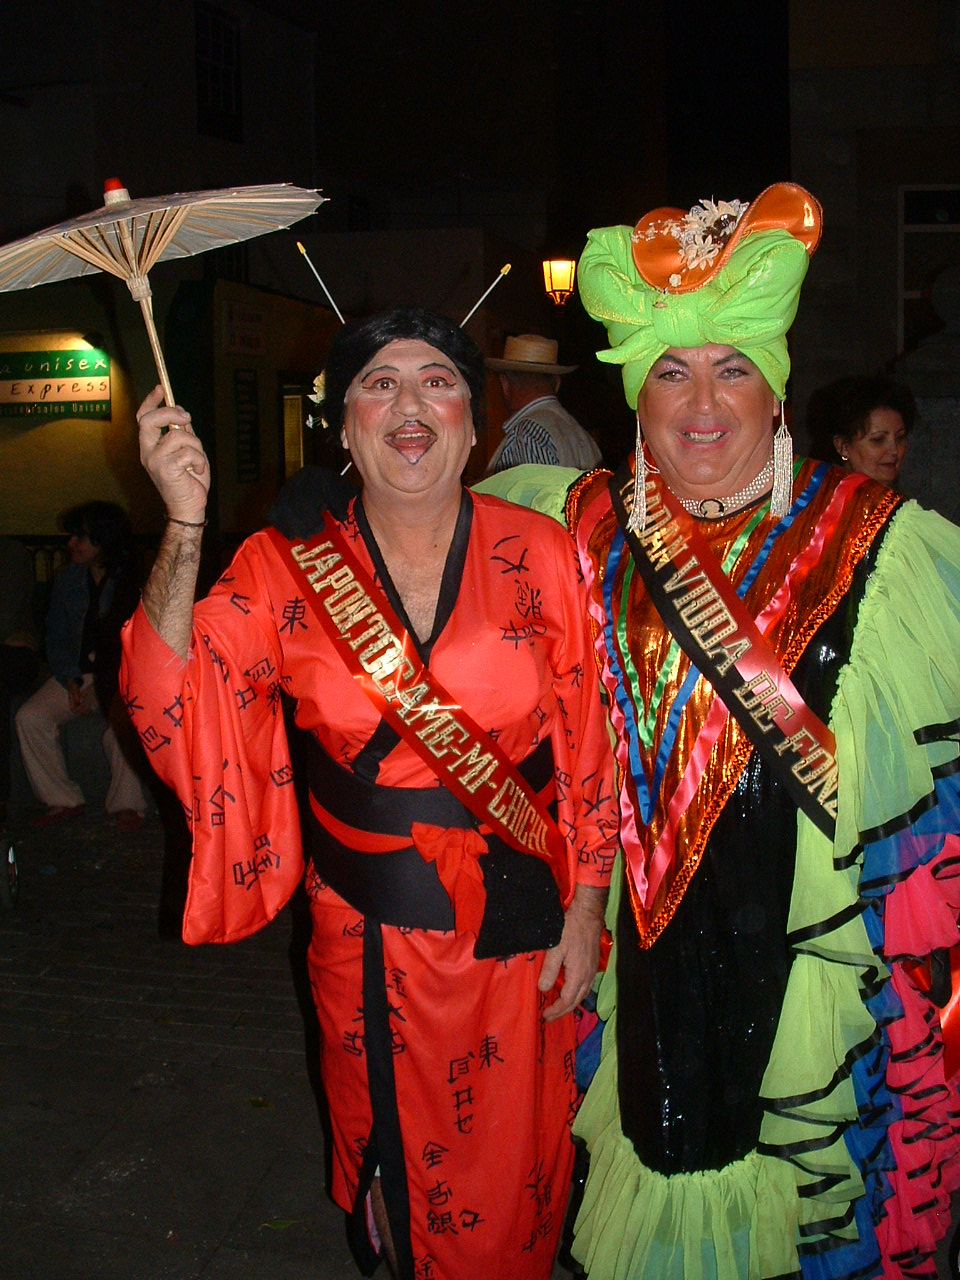 Two men dressed as geishas, Ambassador's Parade, Santa Cruz de La Palma, 2006